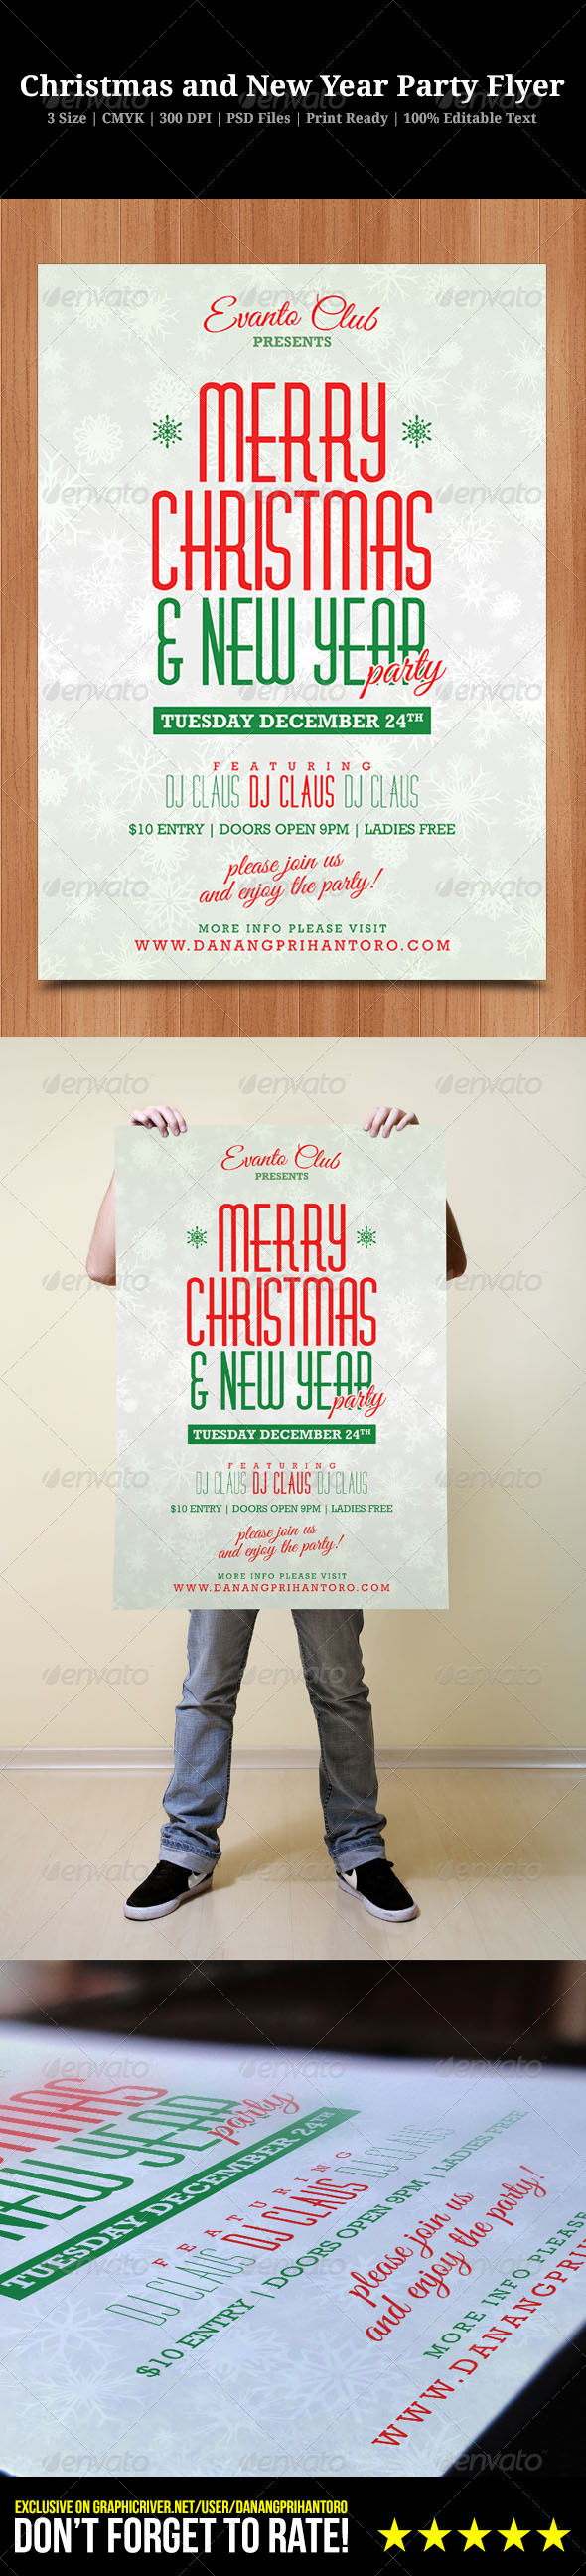 GraphicRiver Christmas and New Year Party Flyer 6405770